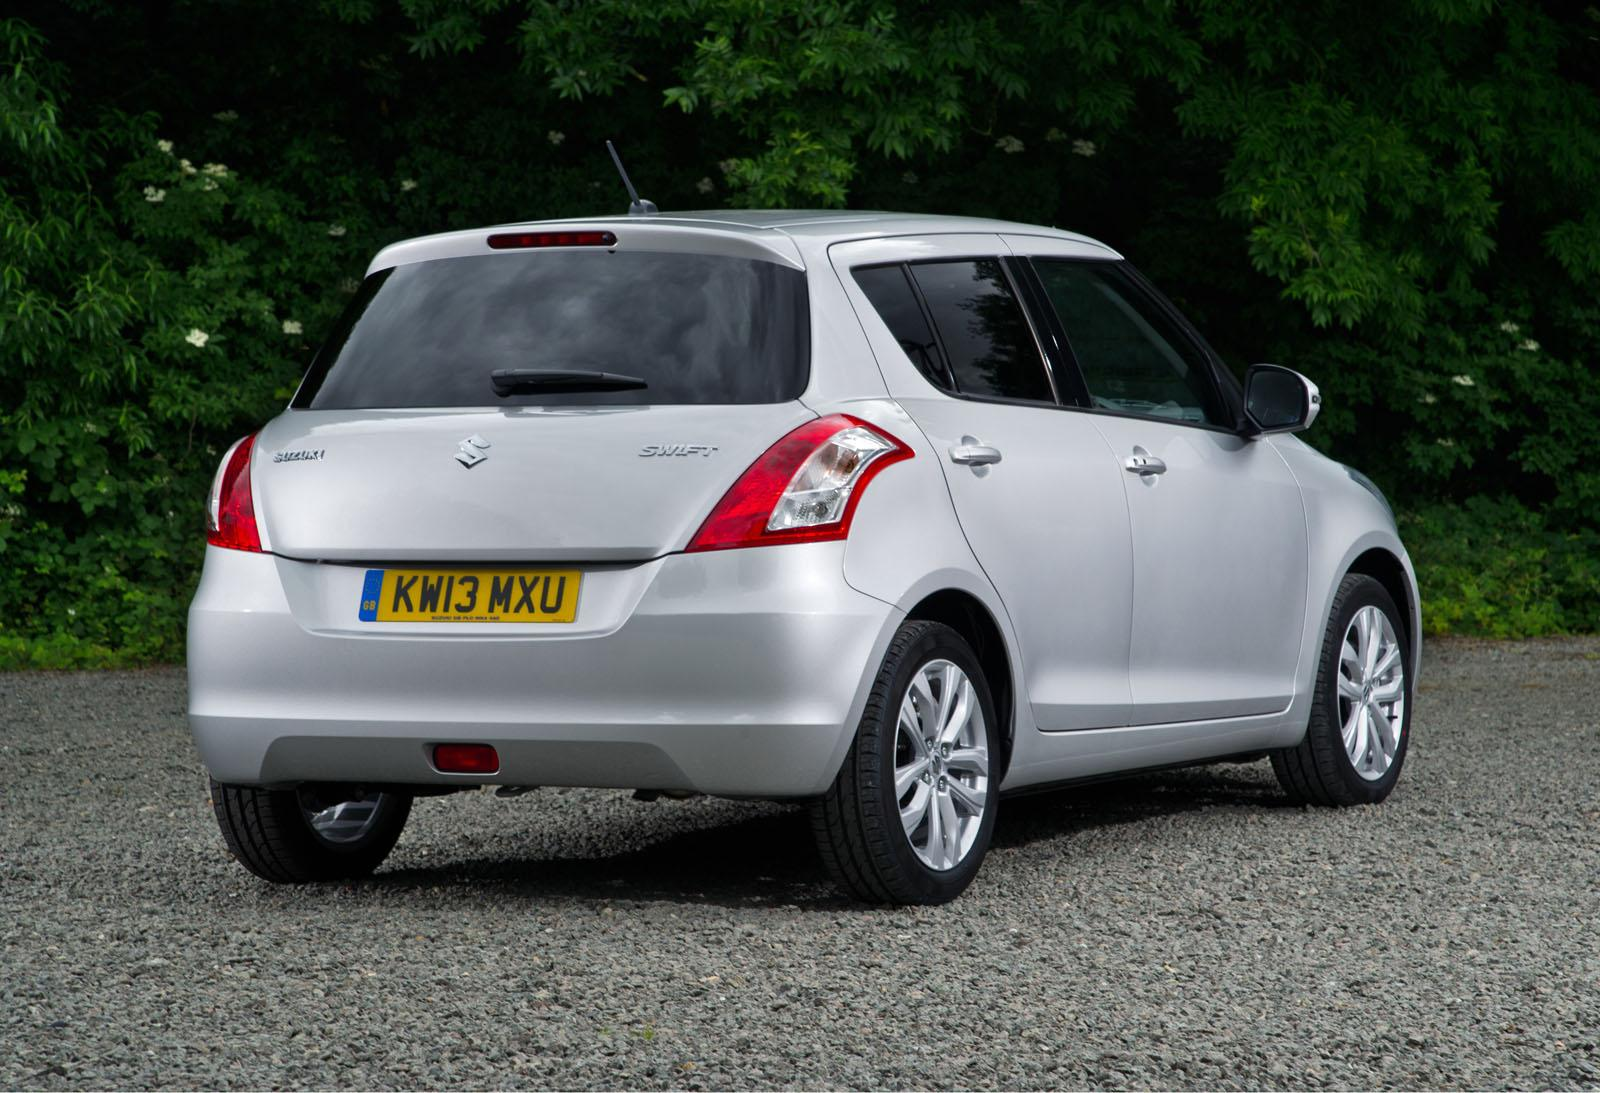 New 2013 Suzuki Swift facelift details and prices revealed | Motoroids